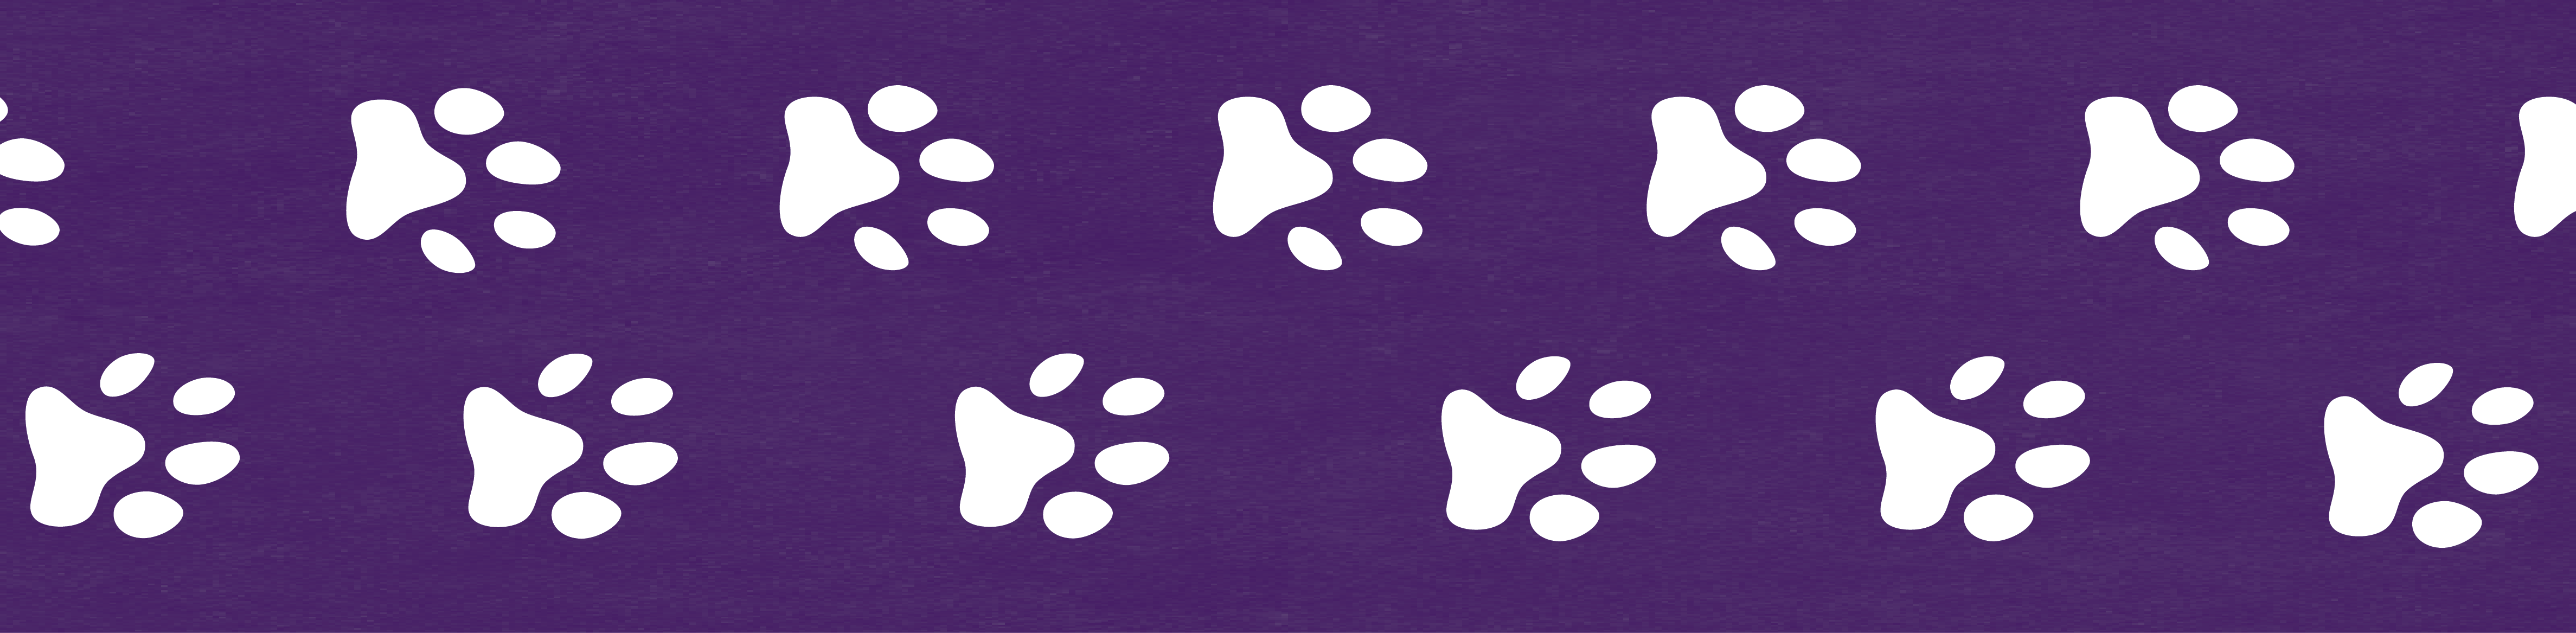 Featured Image - Paw Prints